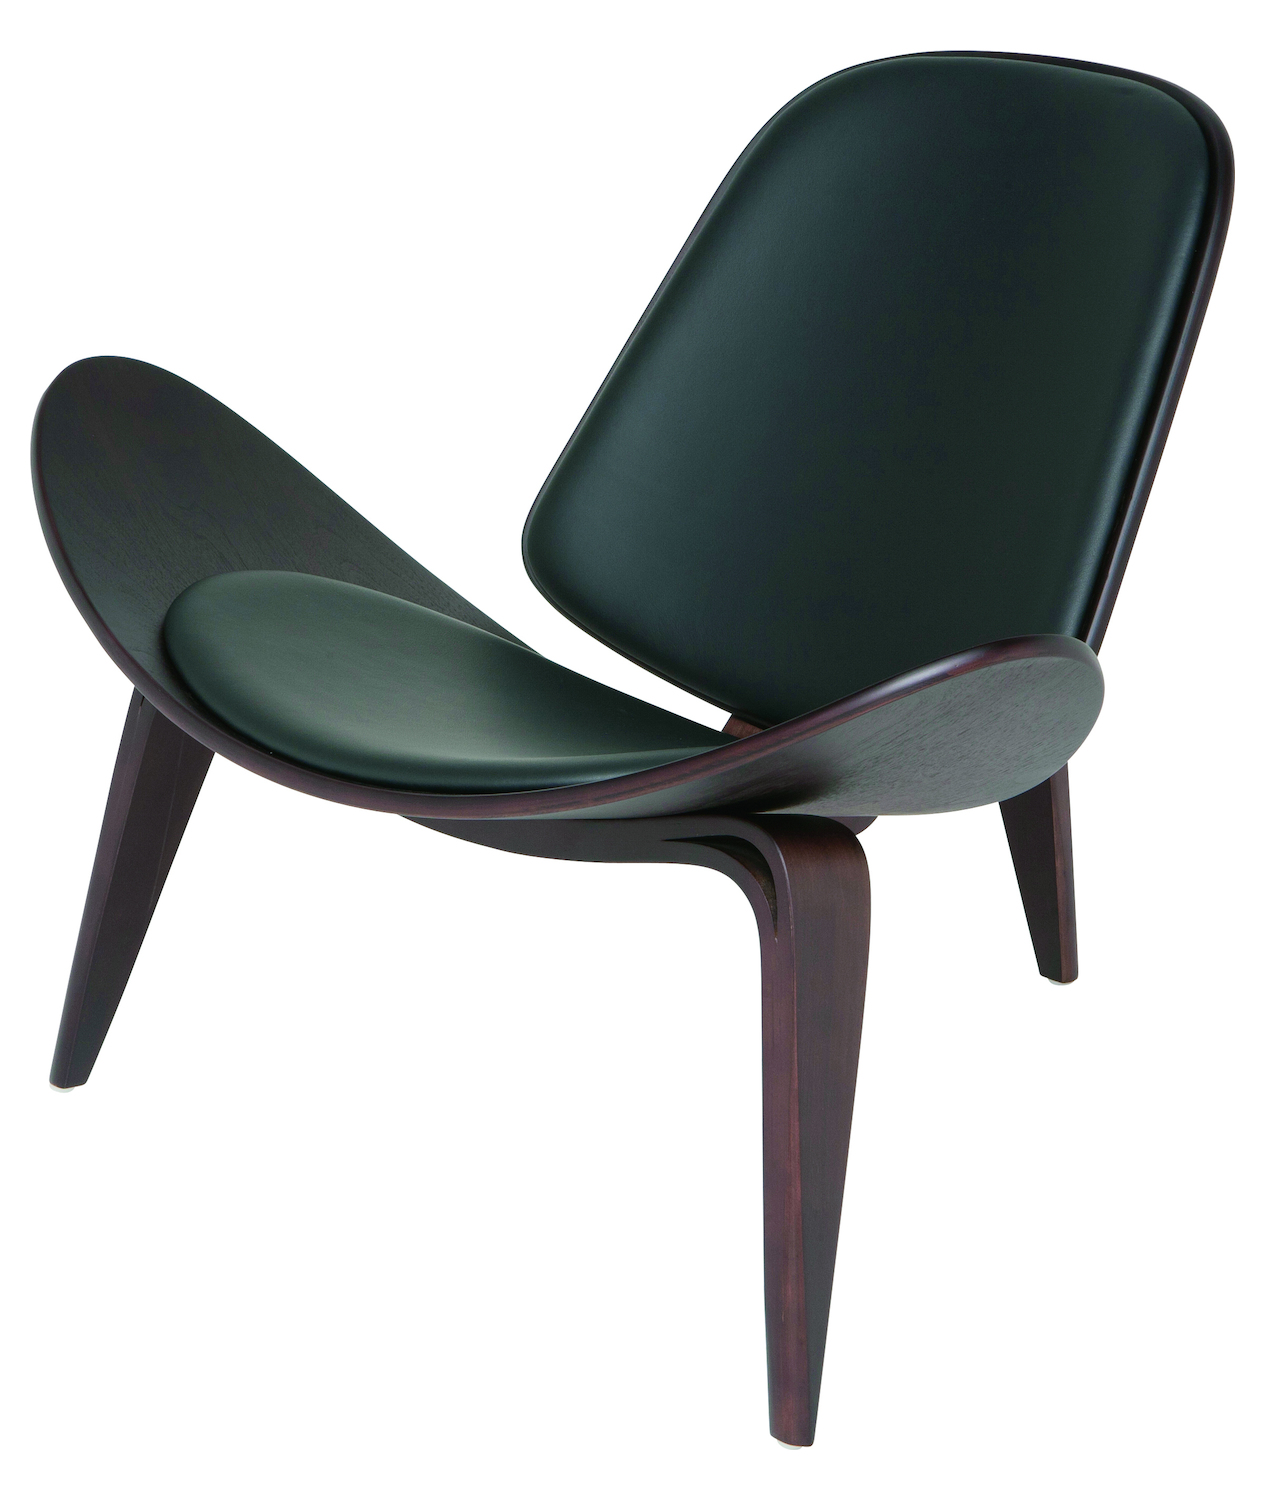 Nuevo Black Dark American Walnut Artemis Lounge Chair Hgem359